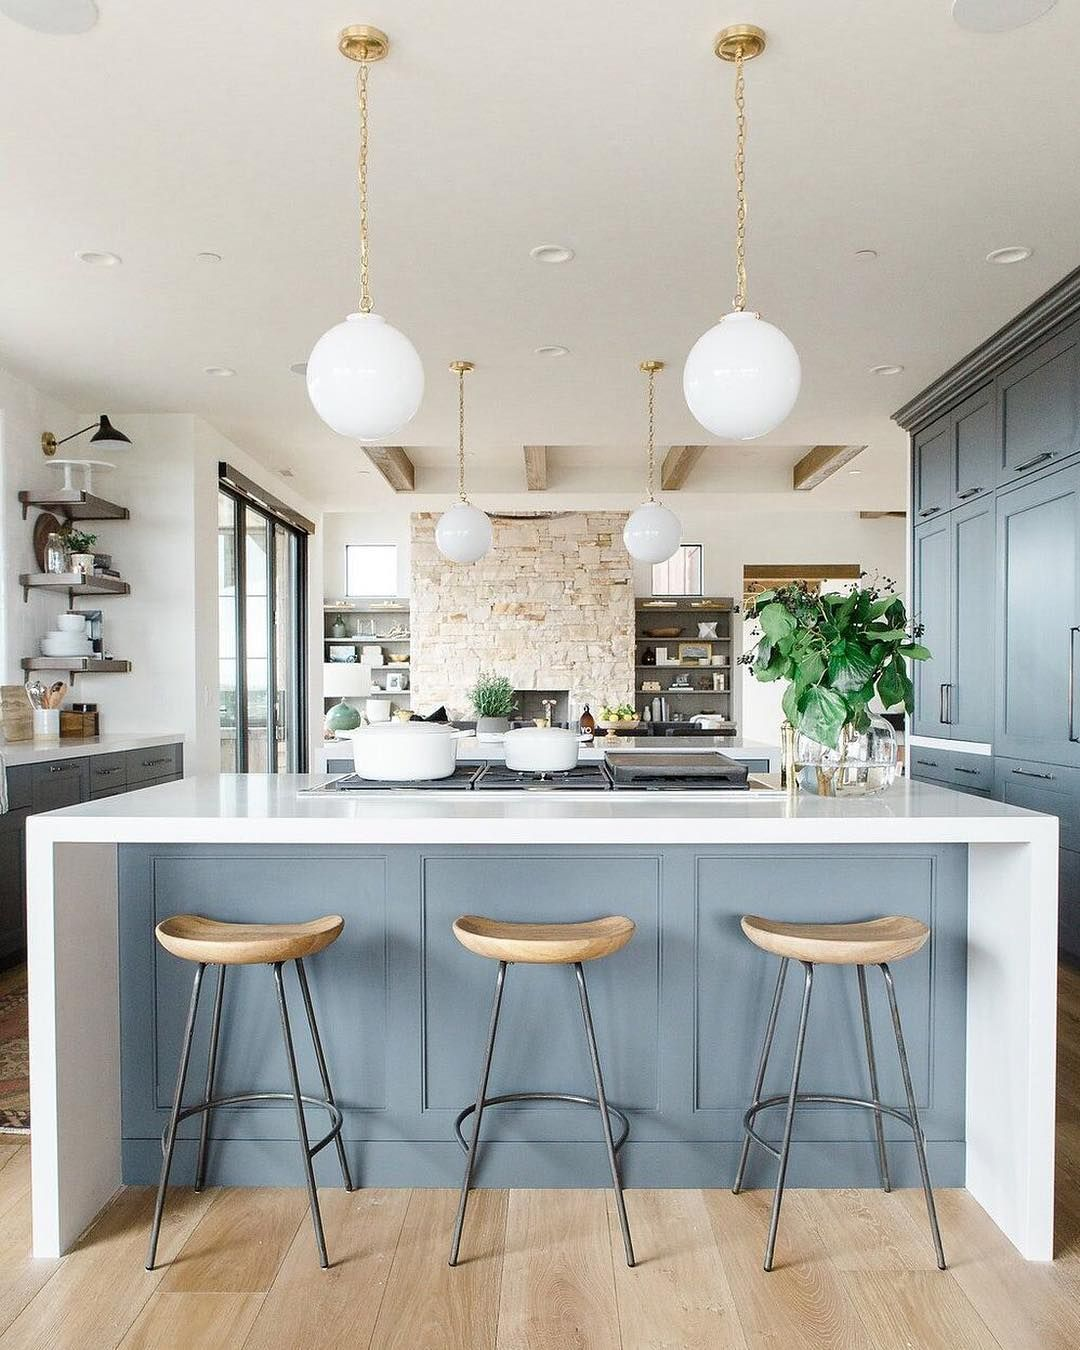 Kitchen Design Questions: Sort Through, Watch, And Rewatch Our Q&As— We Put The